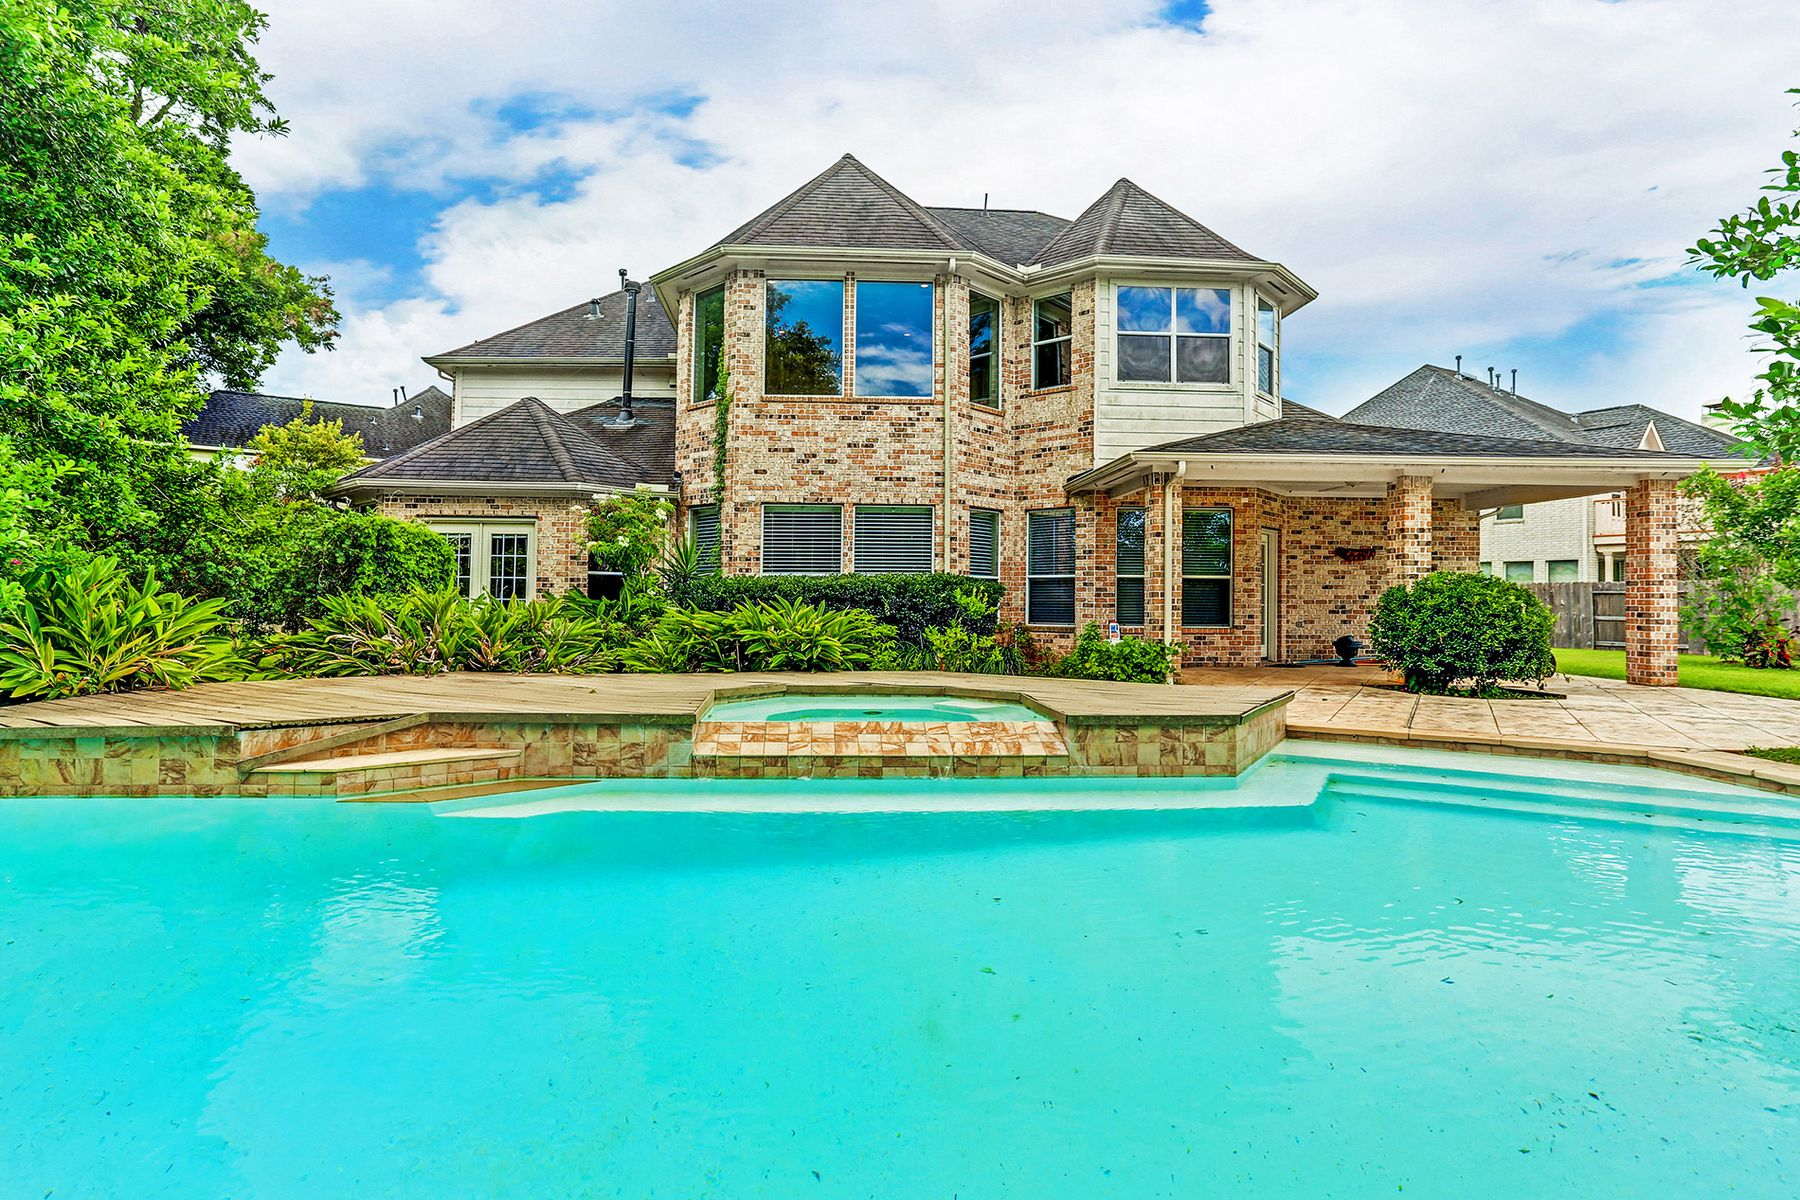 Single Family Homes for Sale at 3923 Lakeridge Canyon Drive Sugar Land, Texas 77498 United States